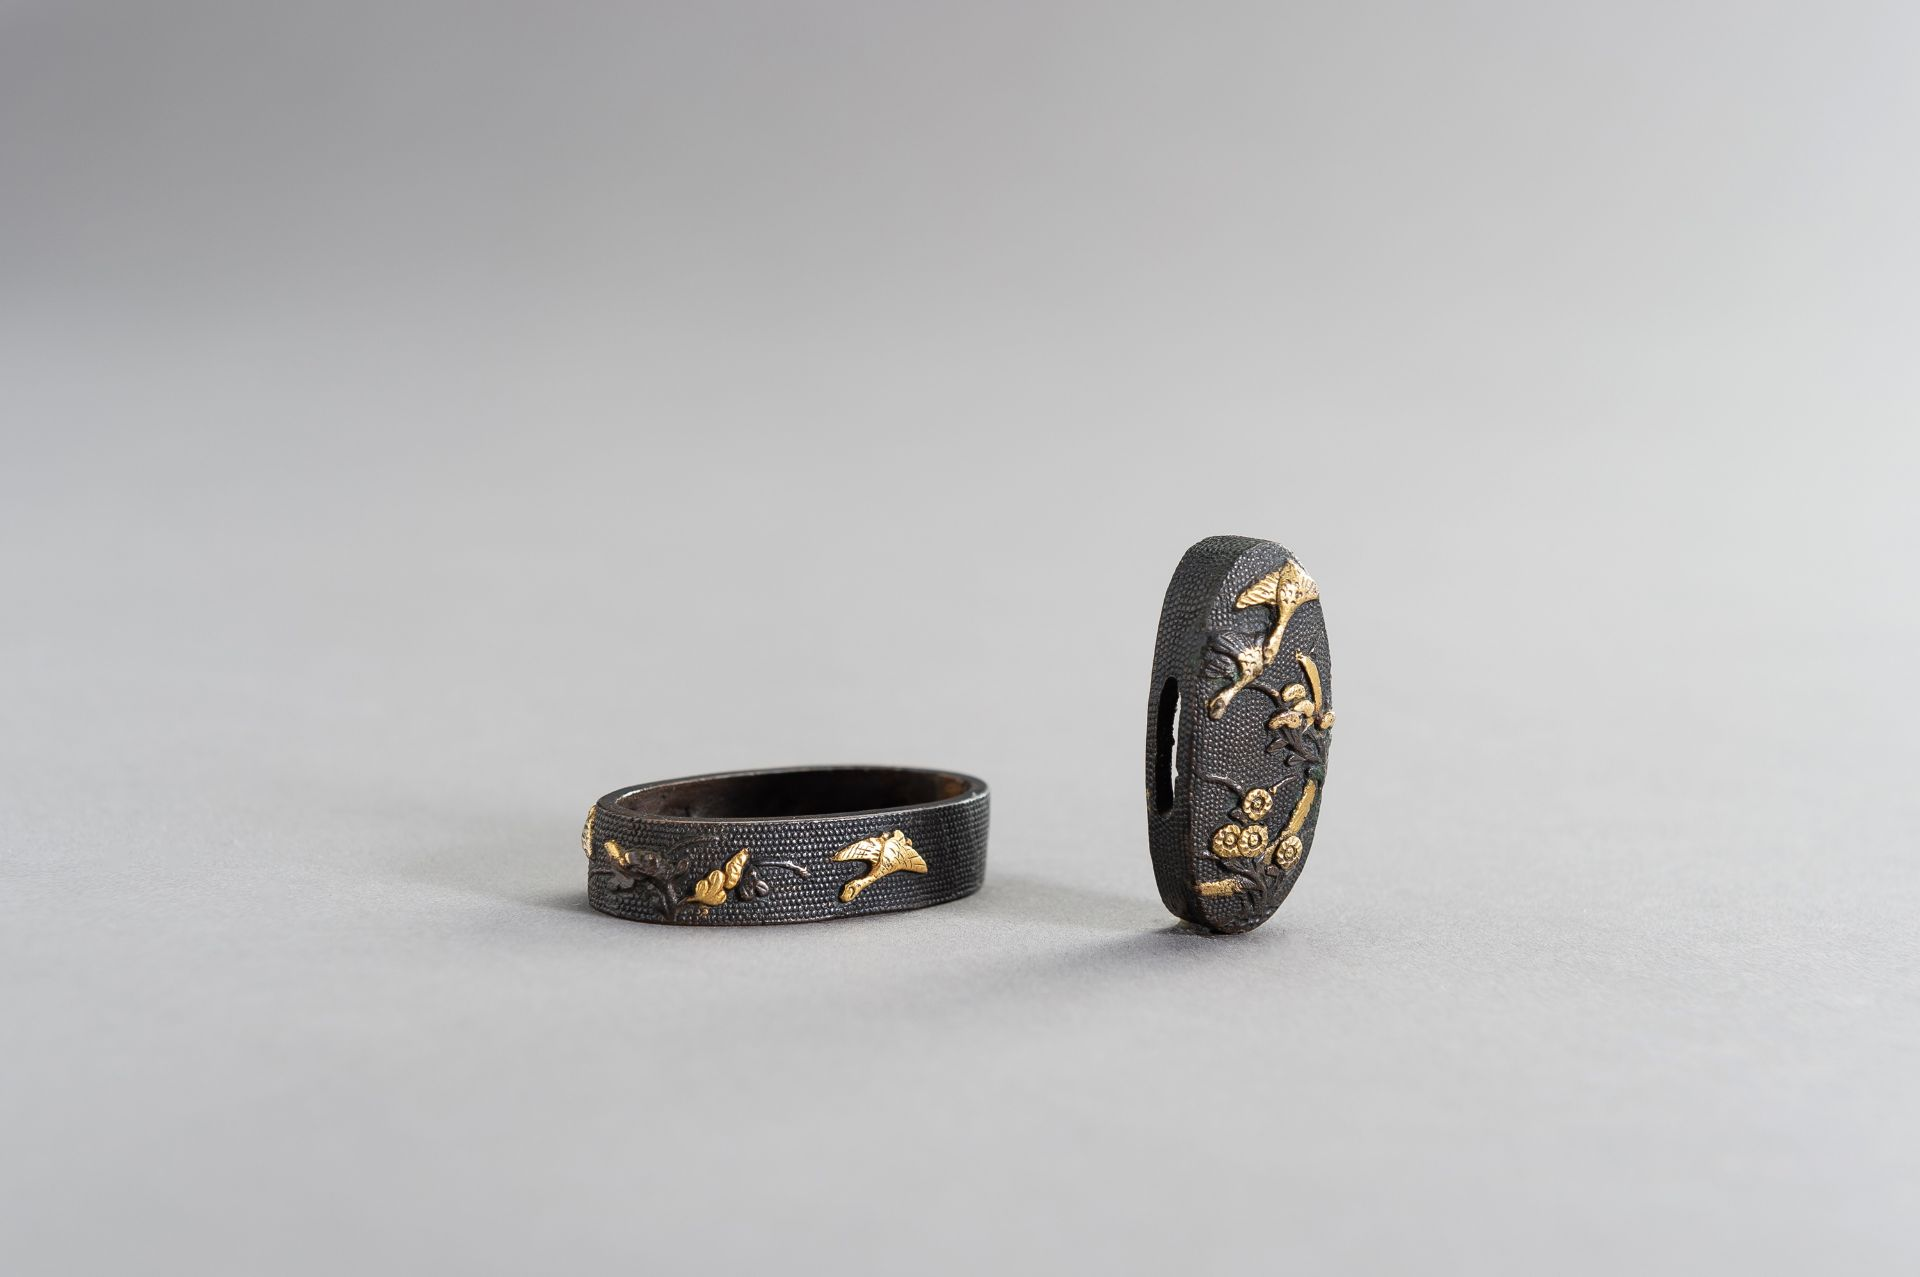 A FINE FUCHI AND KASHIRA WITH GEESE AND MOON - Image 4 of 7